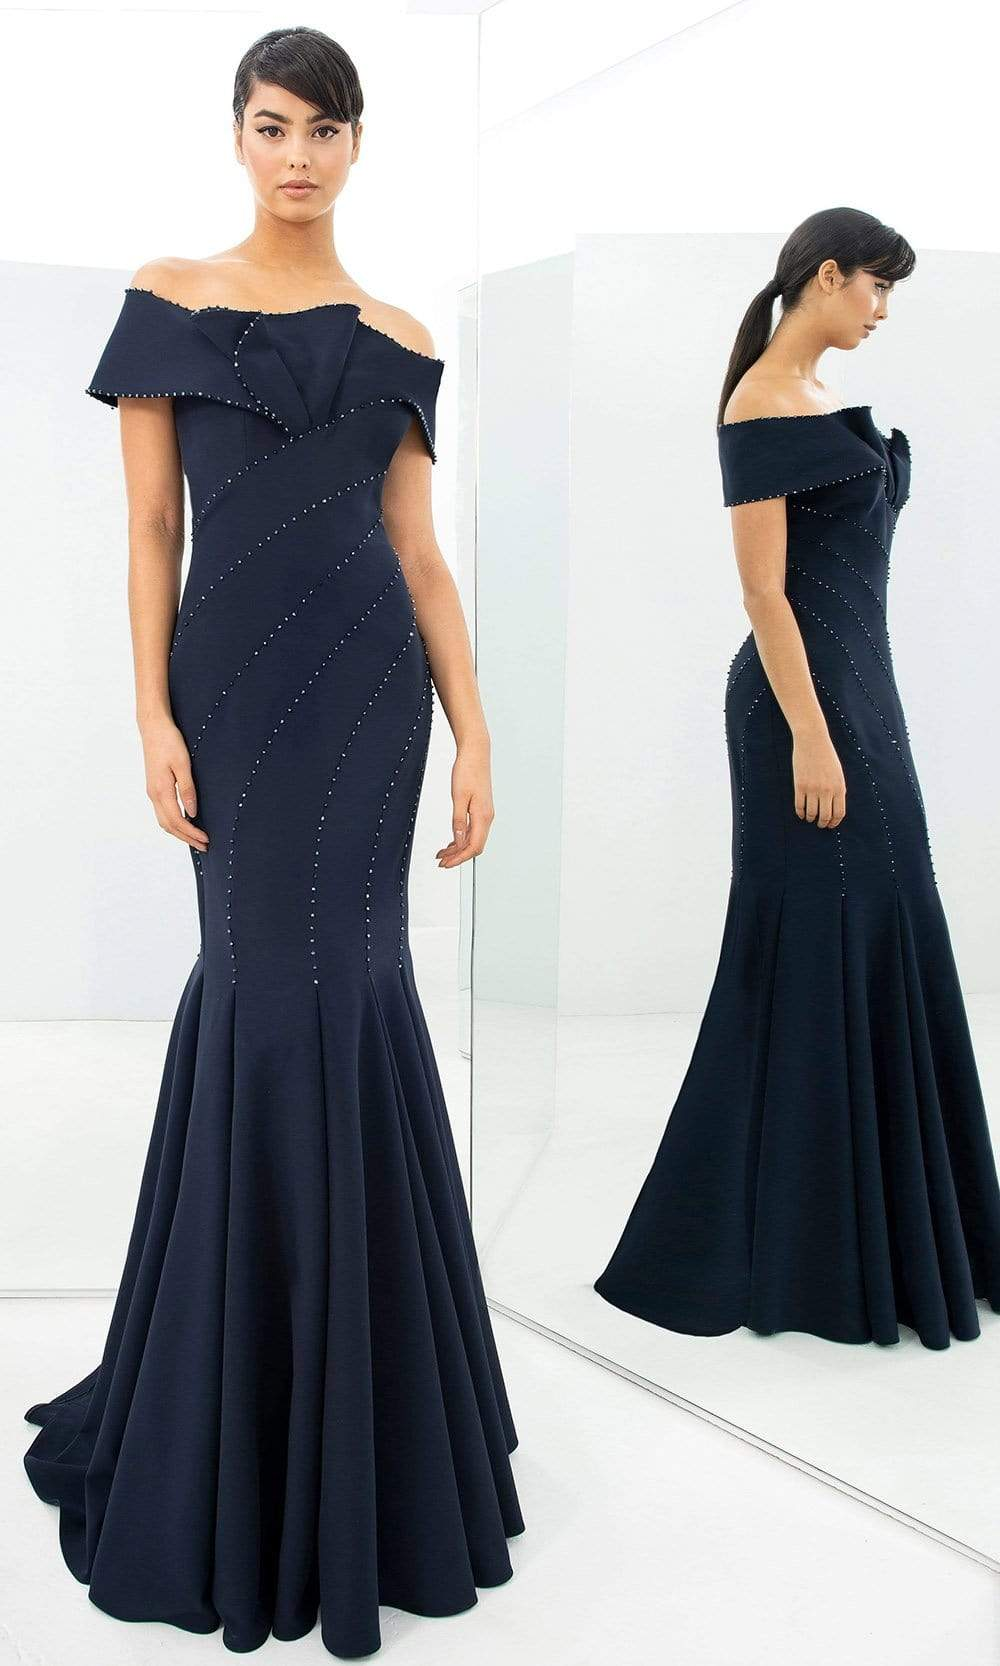 Alexander By Daymor - 1359 Off Shoulder Jersey Trumpet Gown from Alexander By Daymor